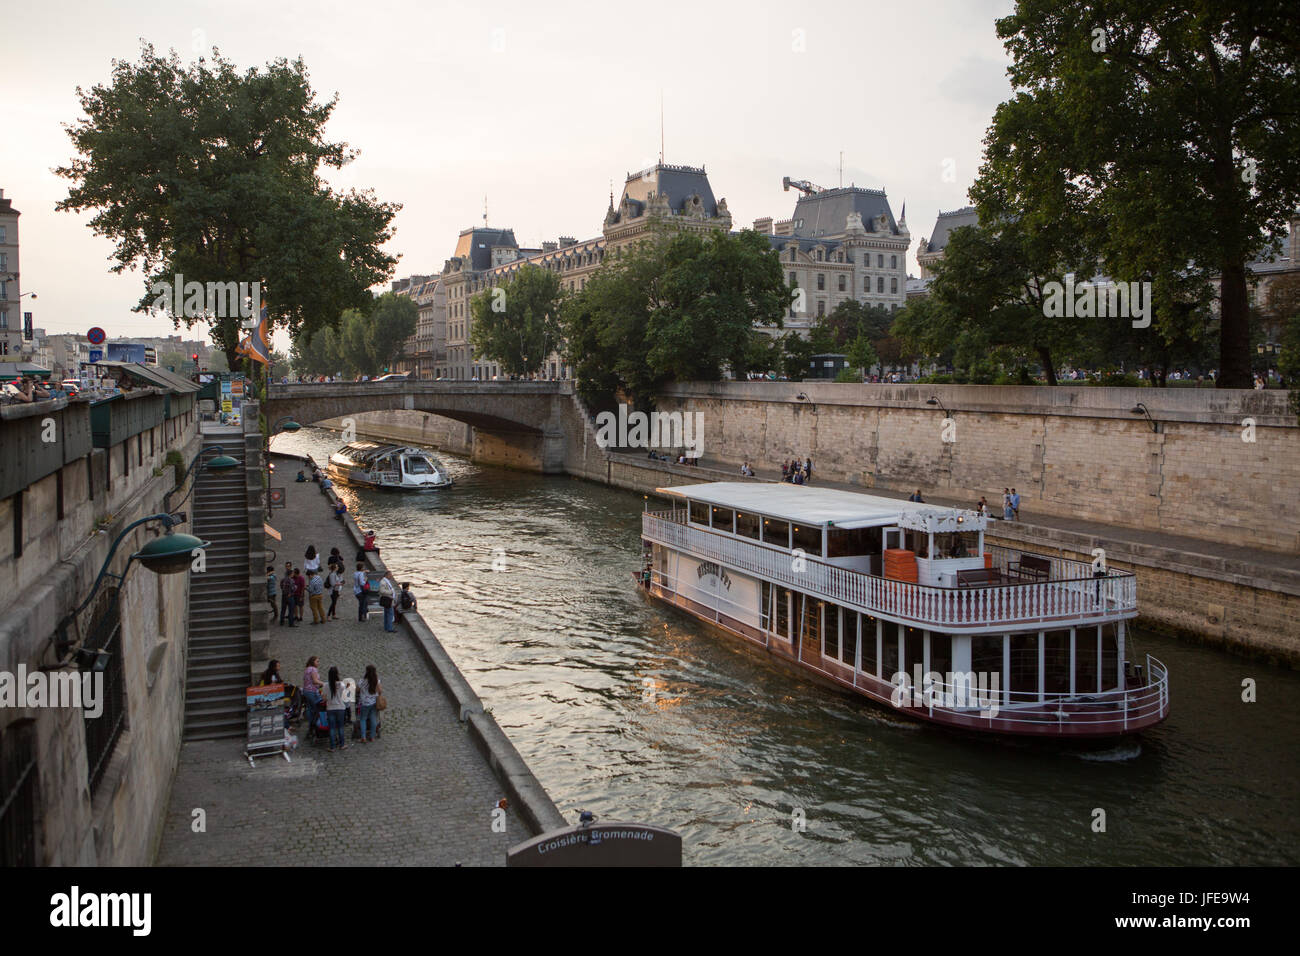 Boats cruise along the Seine River, and Parisians sit along the river banks. - Stock Image